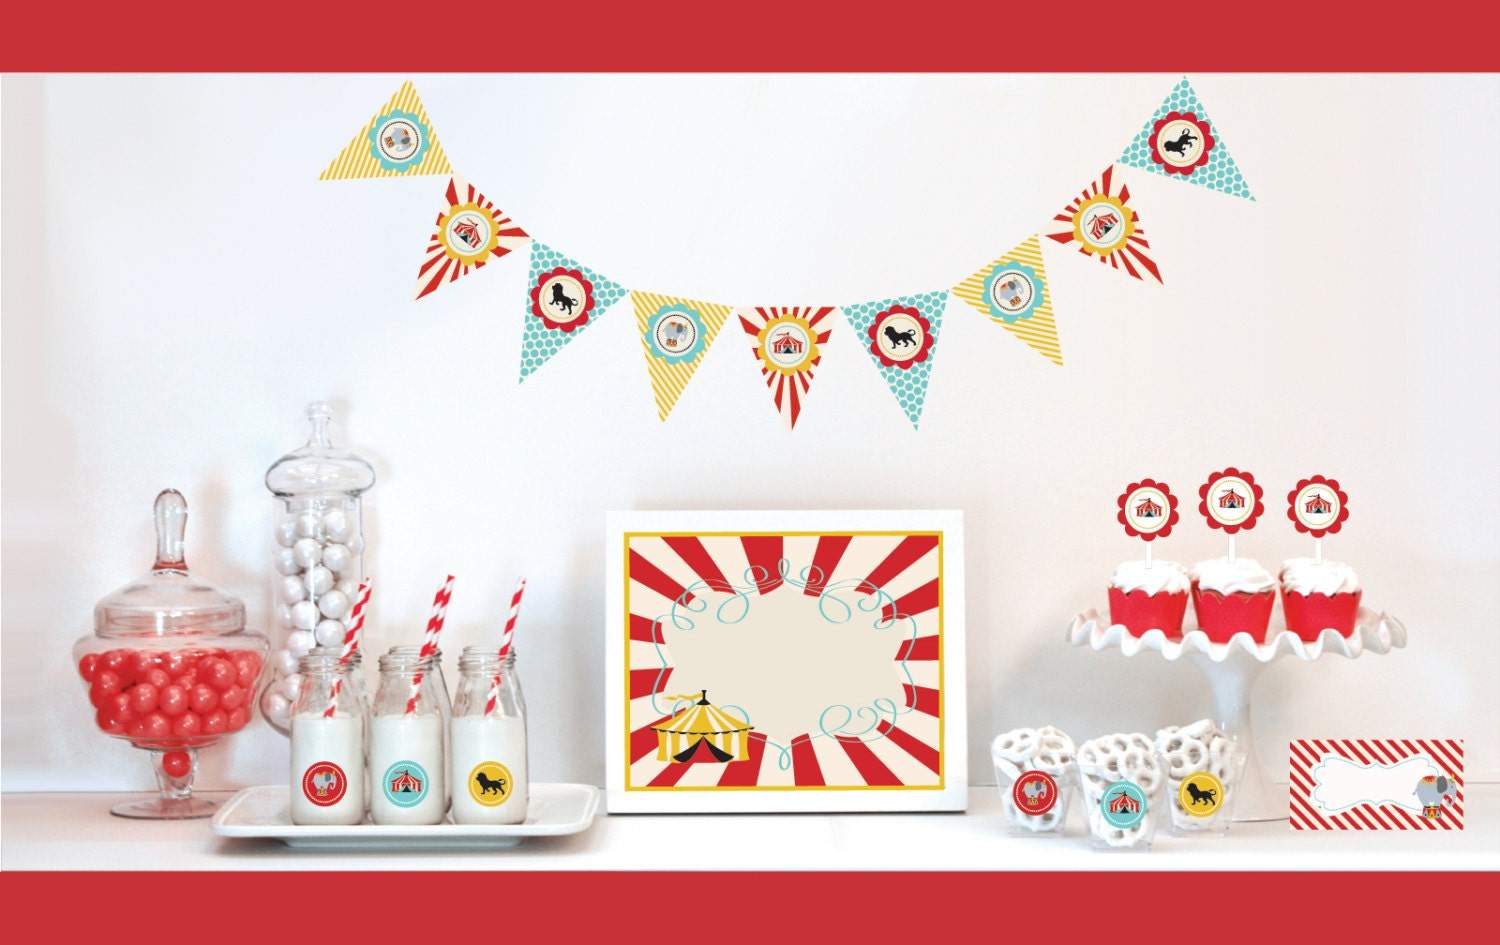 Carnival theme party carnival birthday party ideas carnival - Carnival theme party supplies ...